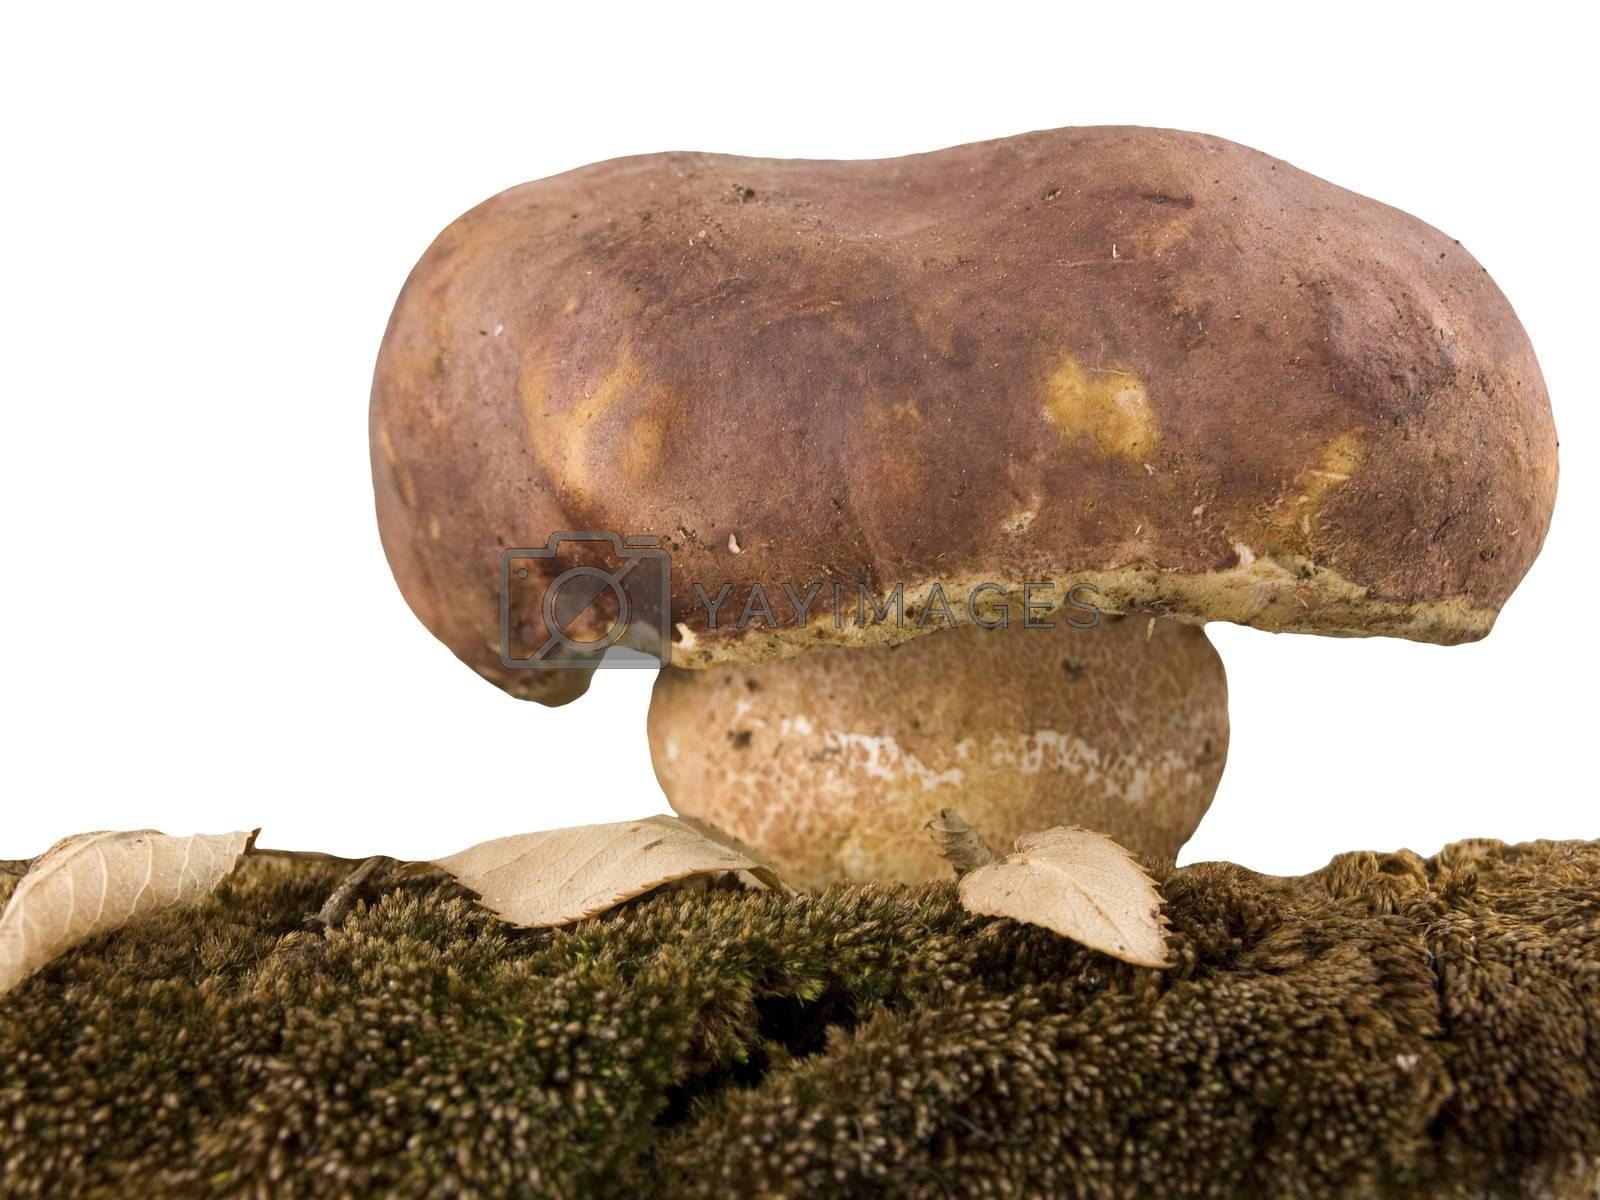 porcini mushrooms and moss isolated on white background